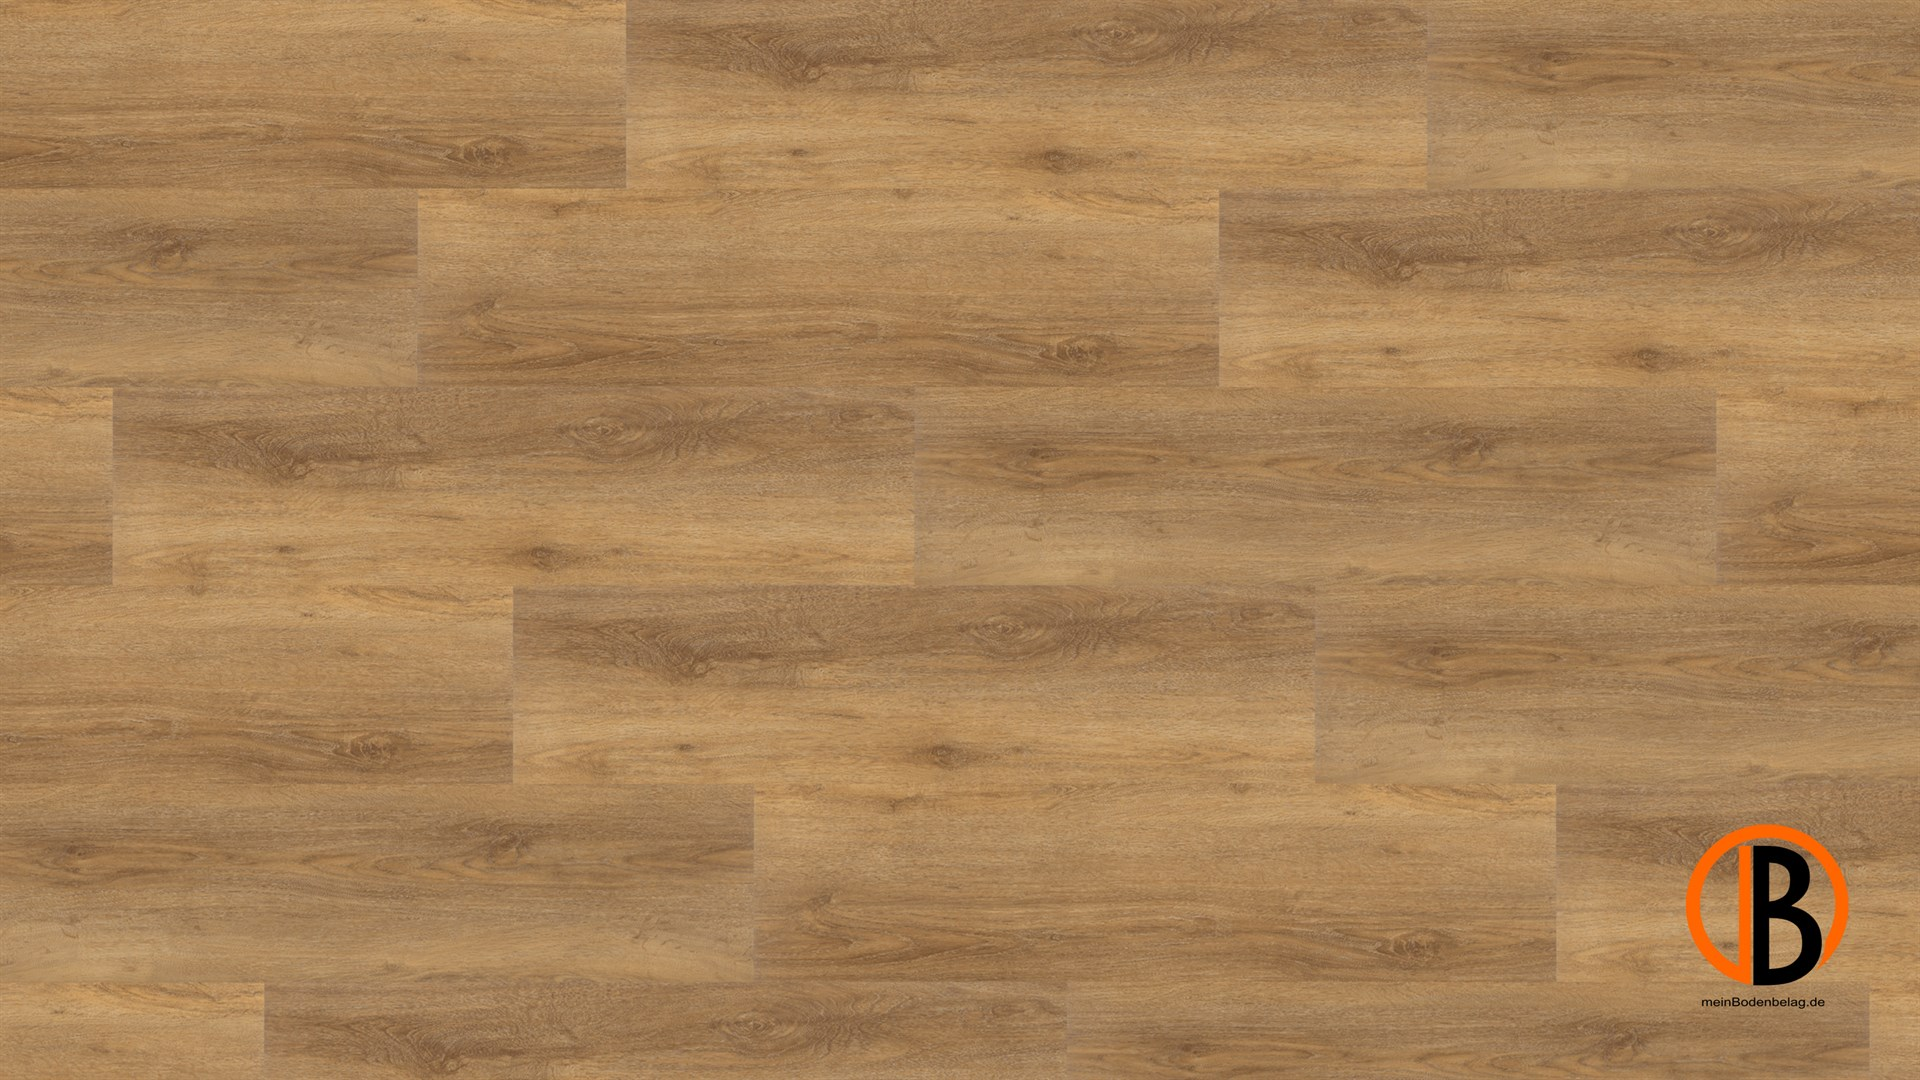 Kiefer Holzstruktur Hdf Vinyl Cool What Is A Laminate Floor With Hdf Vinyl Awesome